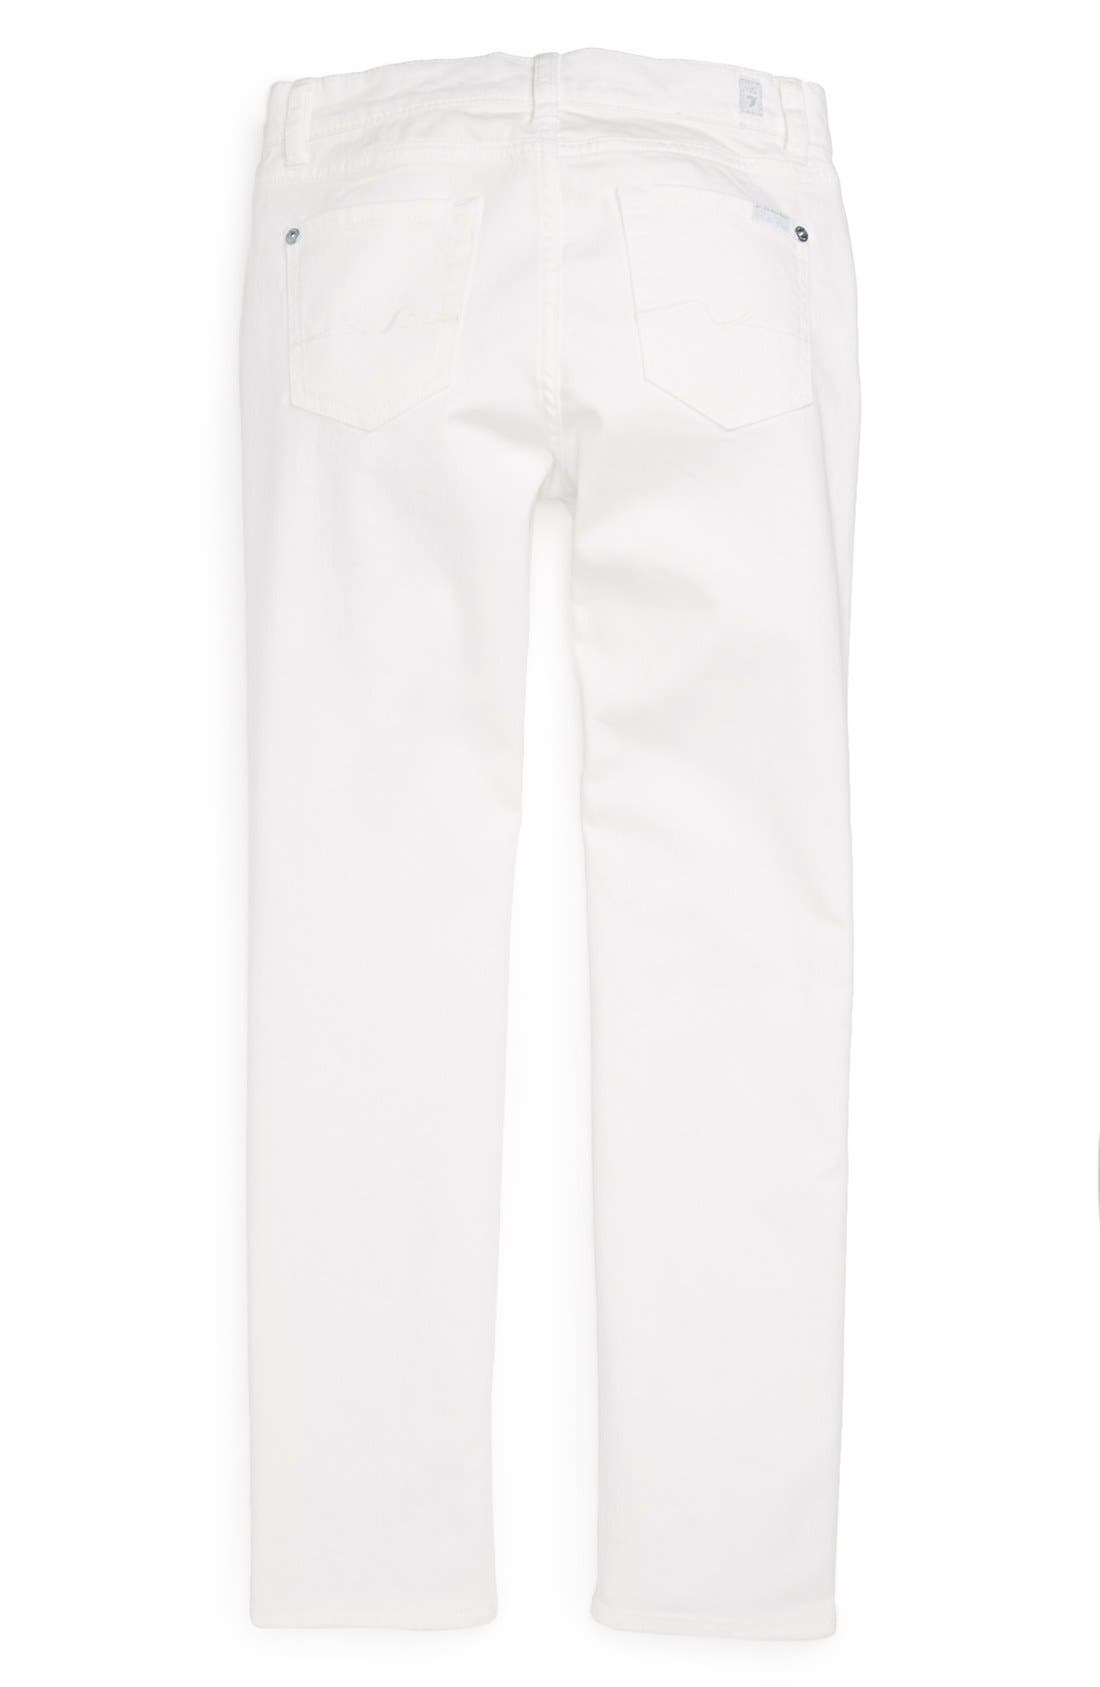 Main Image - 7 For All Mankind® 'The Skinny' Jeans (Little Girls & Big Girls)